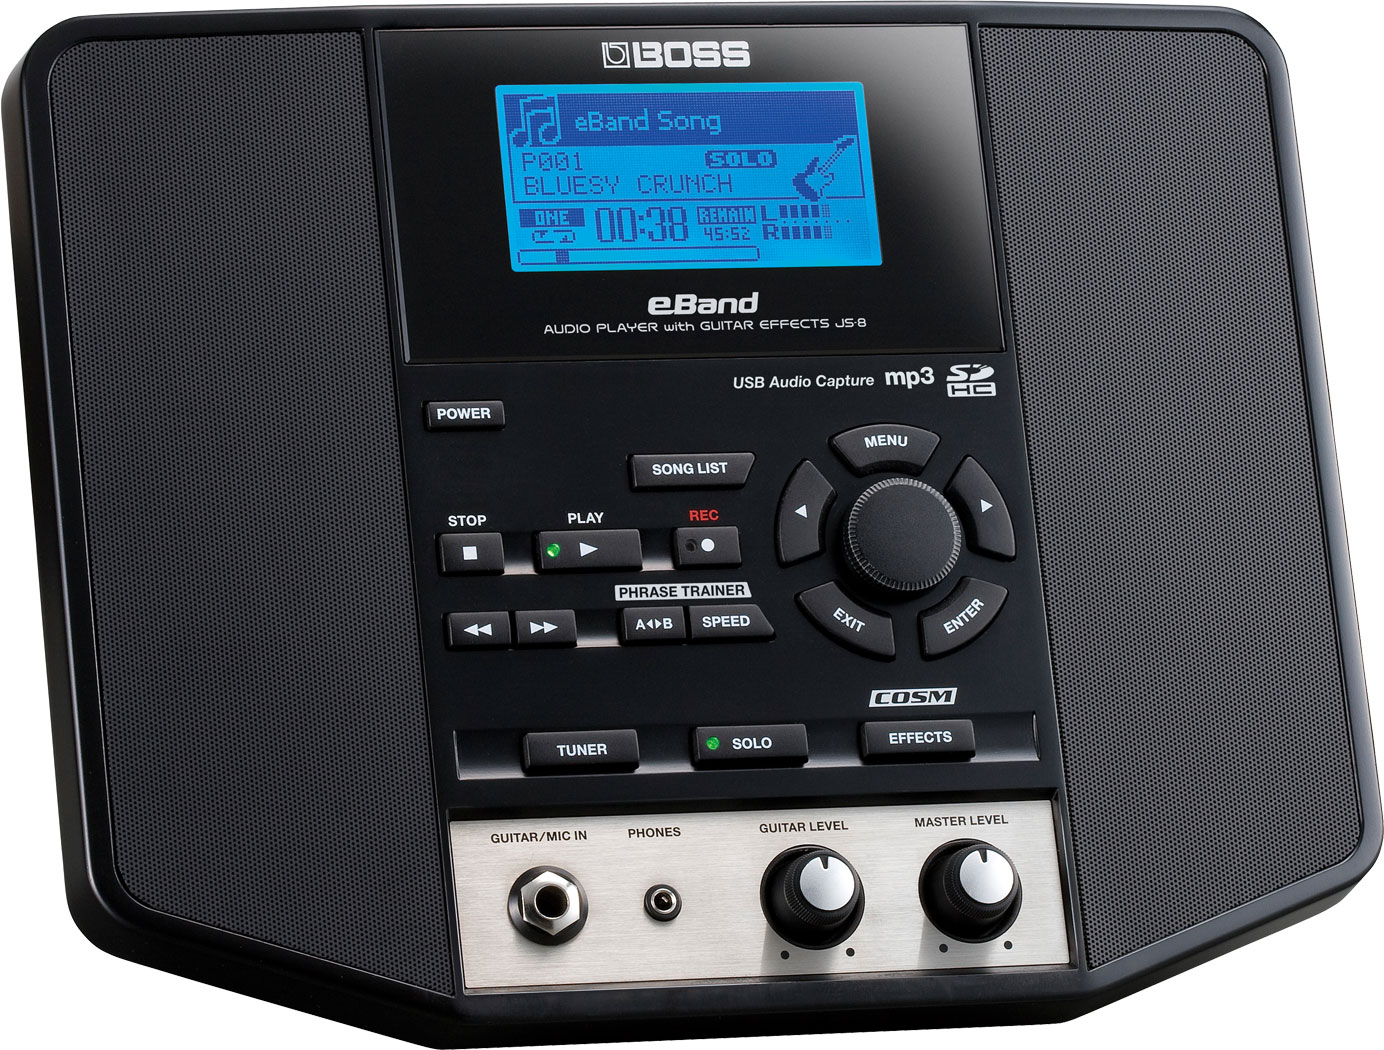 BOSS - eBand JS-8 | Audio Player with Guitar Effects